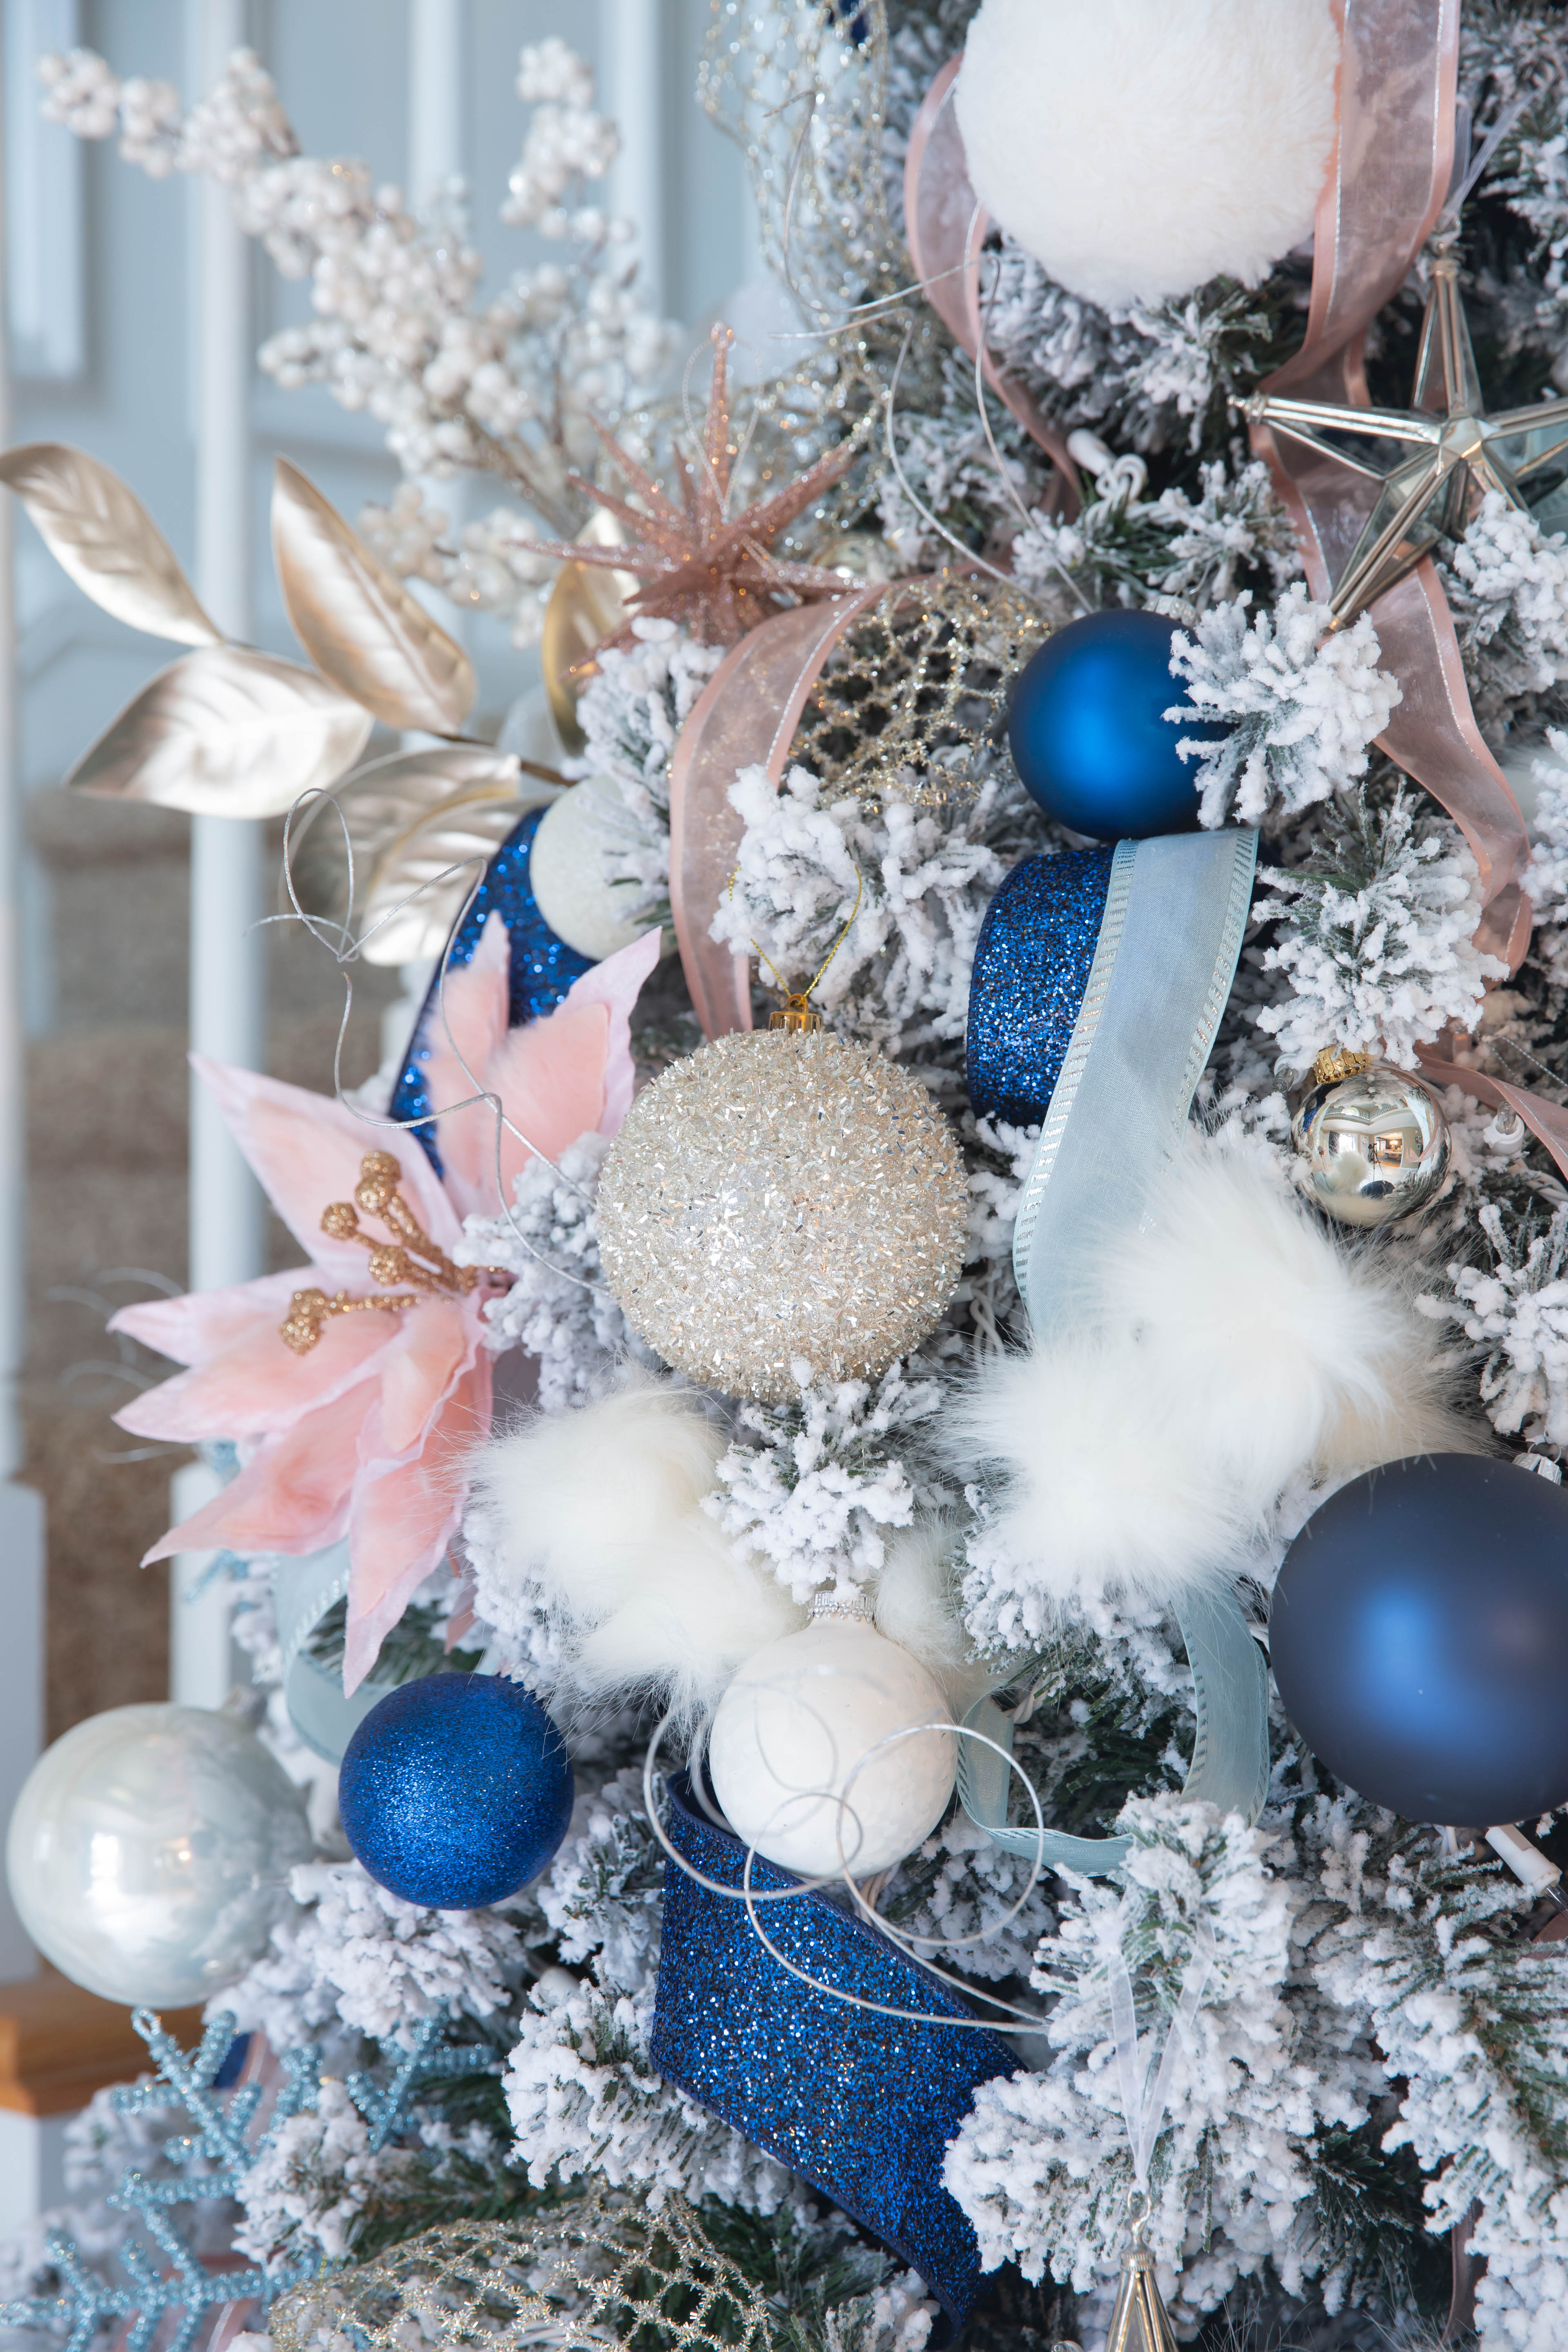 Pink and Navy Christmas Tree - Pink and Navy Christmas Decorations - Pink and Navy Christmas - Pink and Navy Tree Decorations - Navy Blue and Pink Christmas Tree - Navy Pink Christmas Tree - Navy Blue and Blush Pink Christmas Tree - Navy Pink Gold Christmas Tree - Blush Pink and Navy Christmas Tree